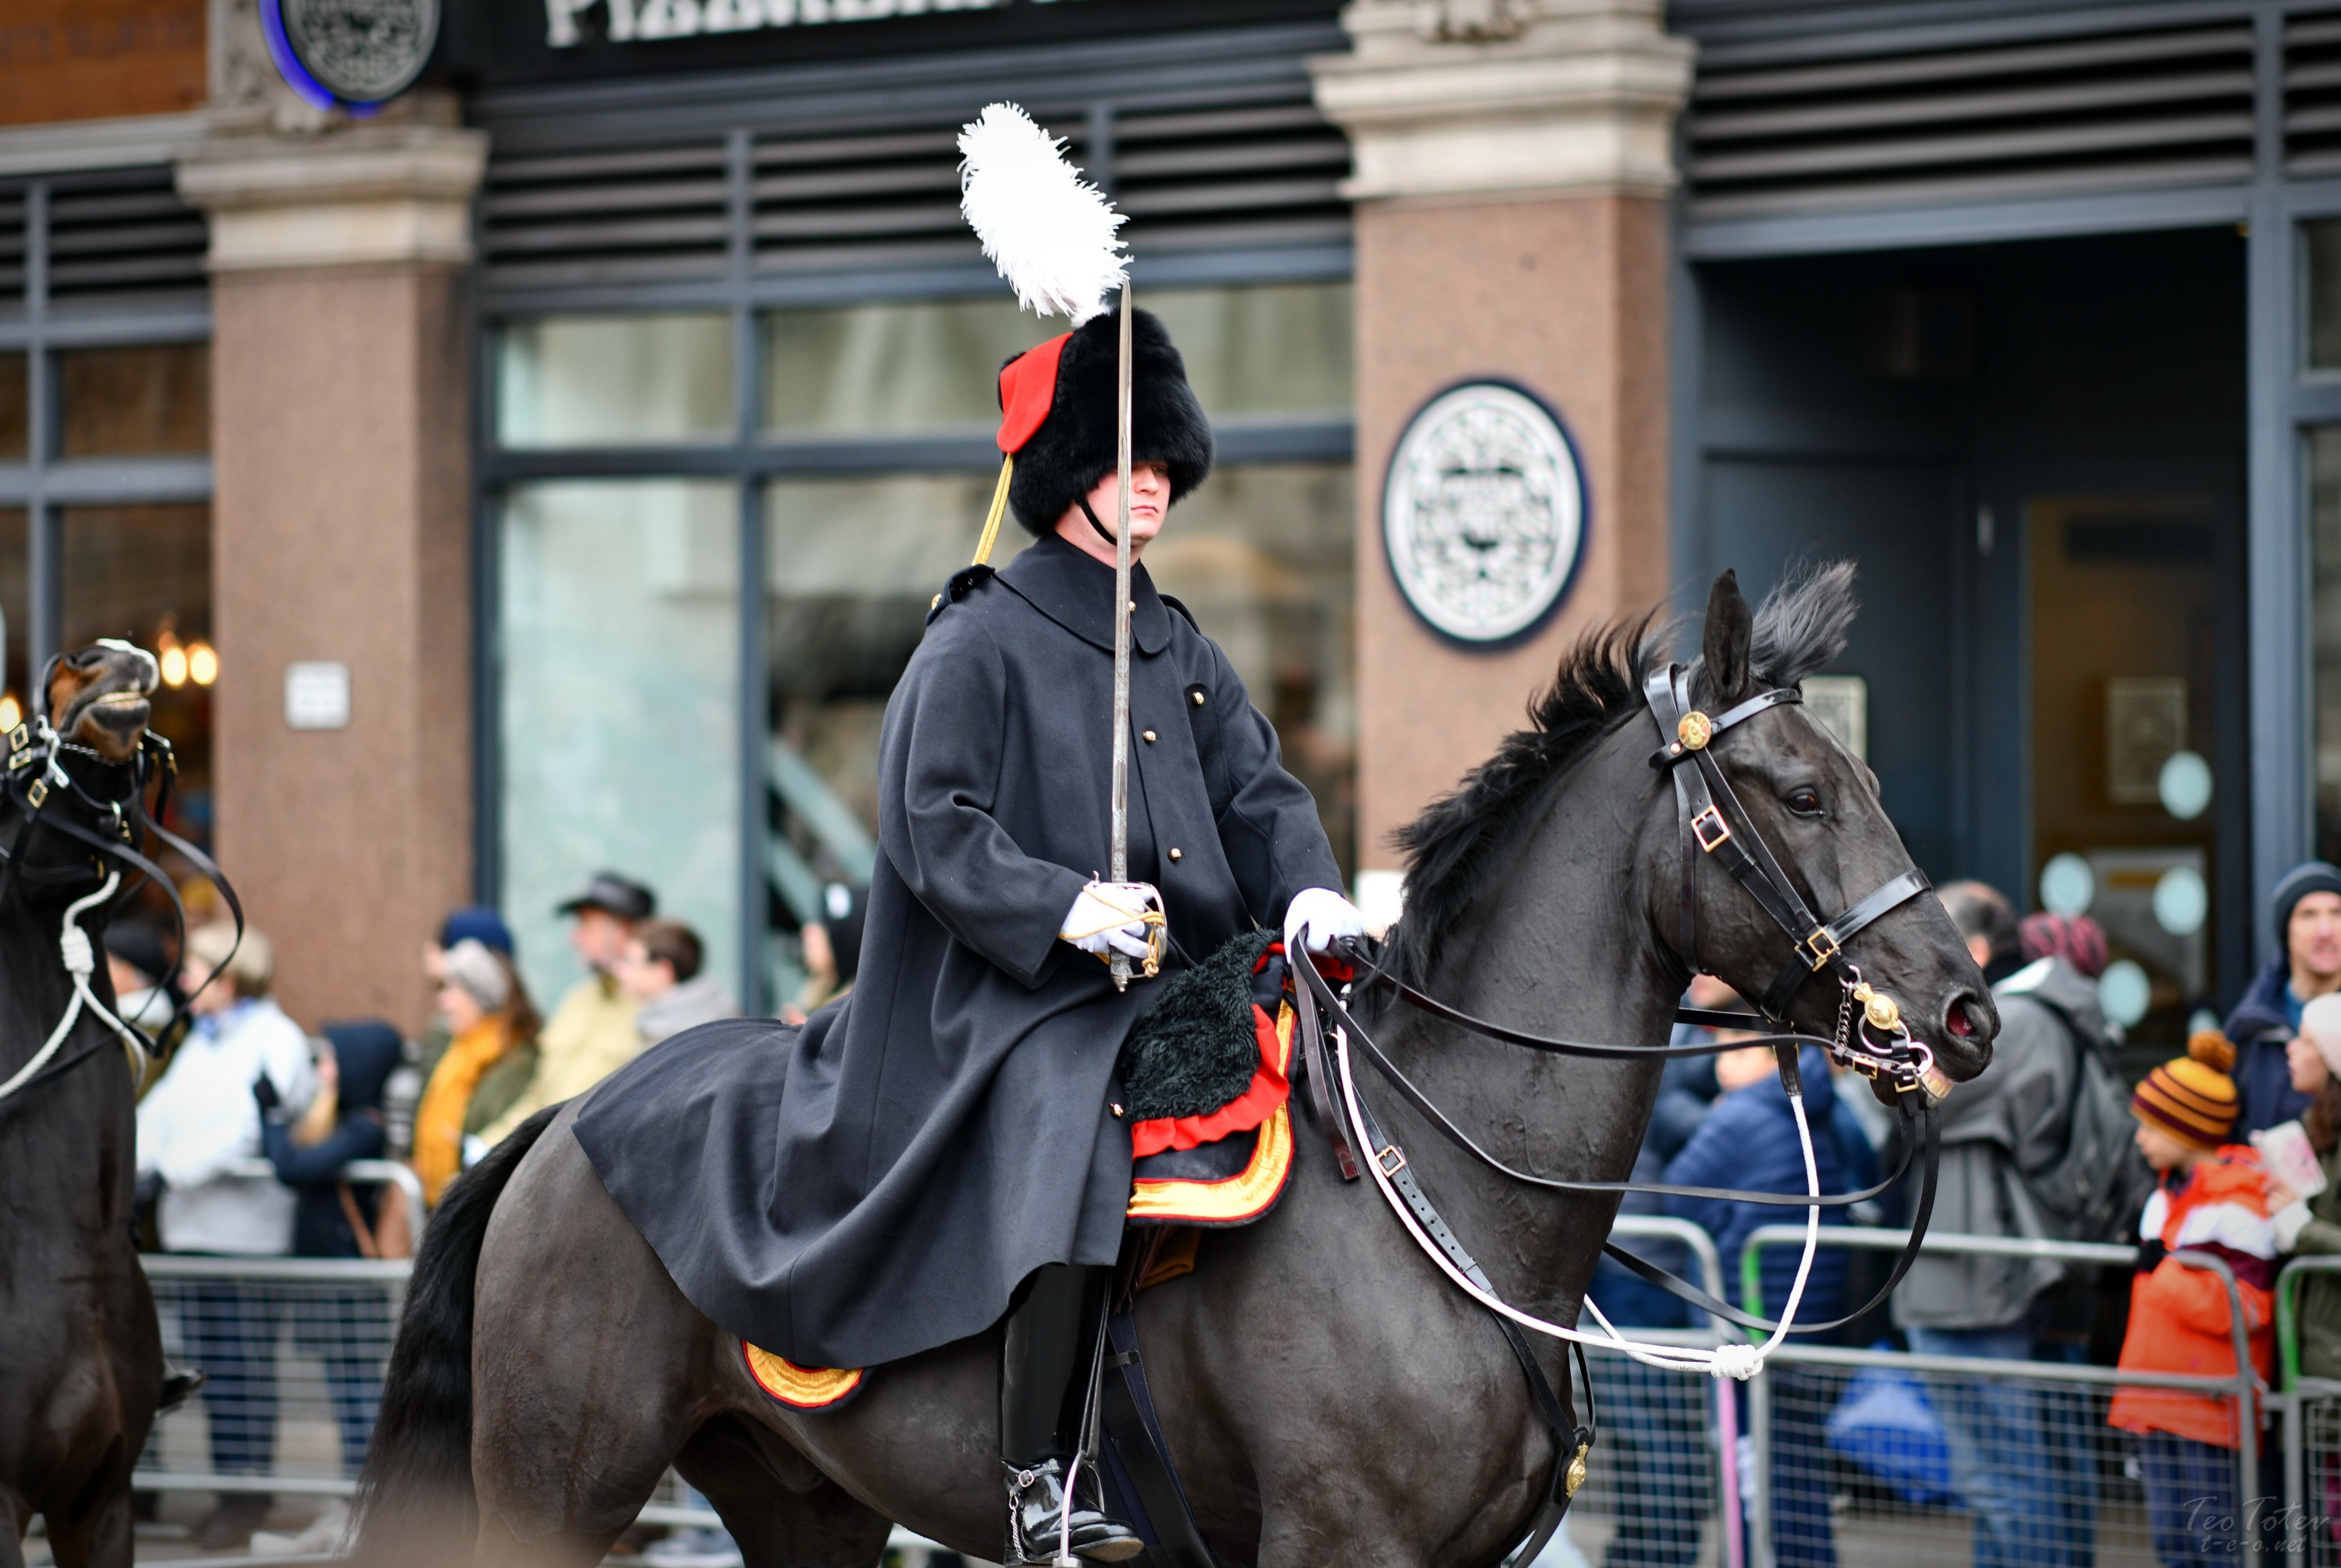 UK Soldier on horse with sword